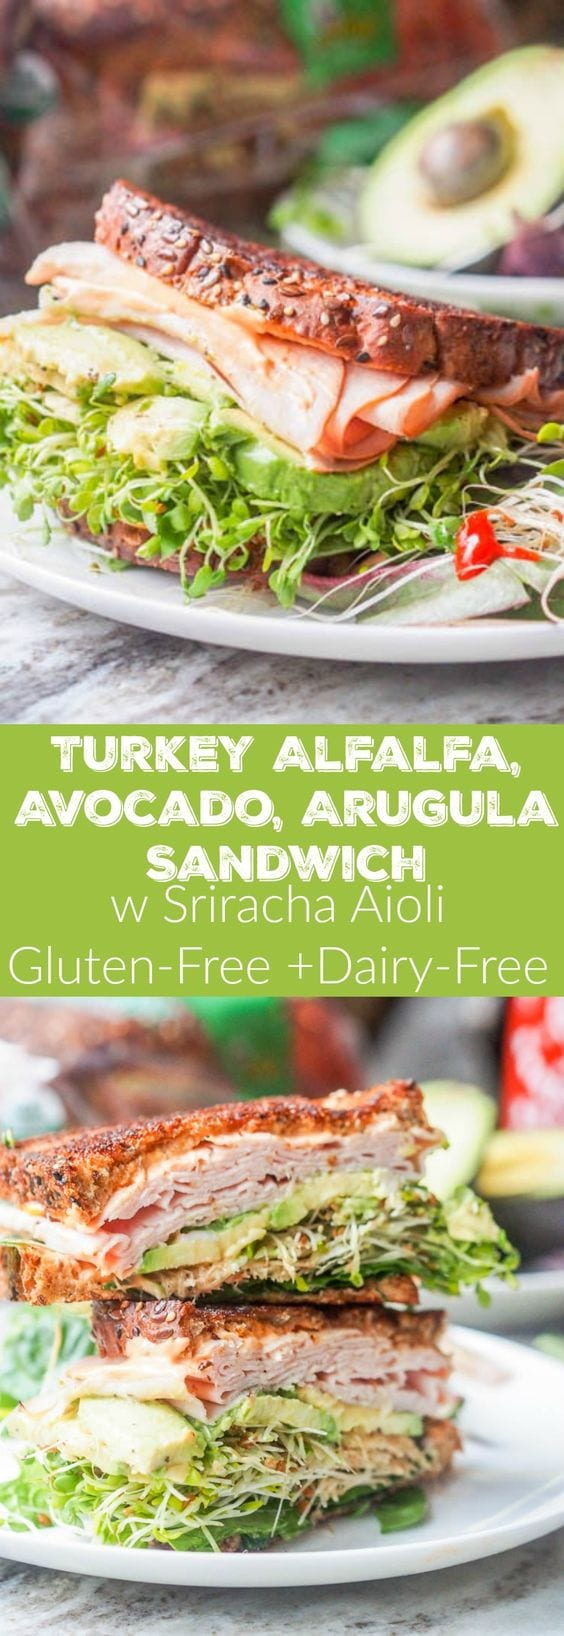 The best turkey, arugula, alfalfa and avocado sandwich you'll ever eat. Topped with a spicy Sriracha Aioli. Boom. Lunch is served. Gluten Free + Dairy Free too. #lunch #sandwich #turkey